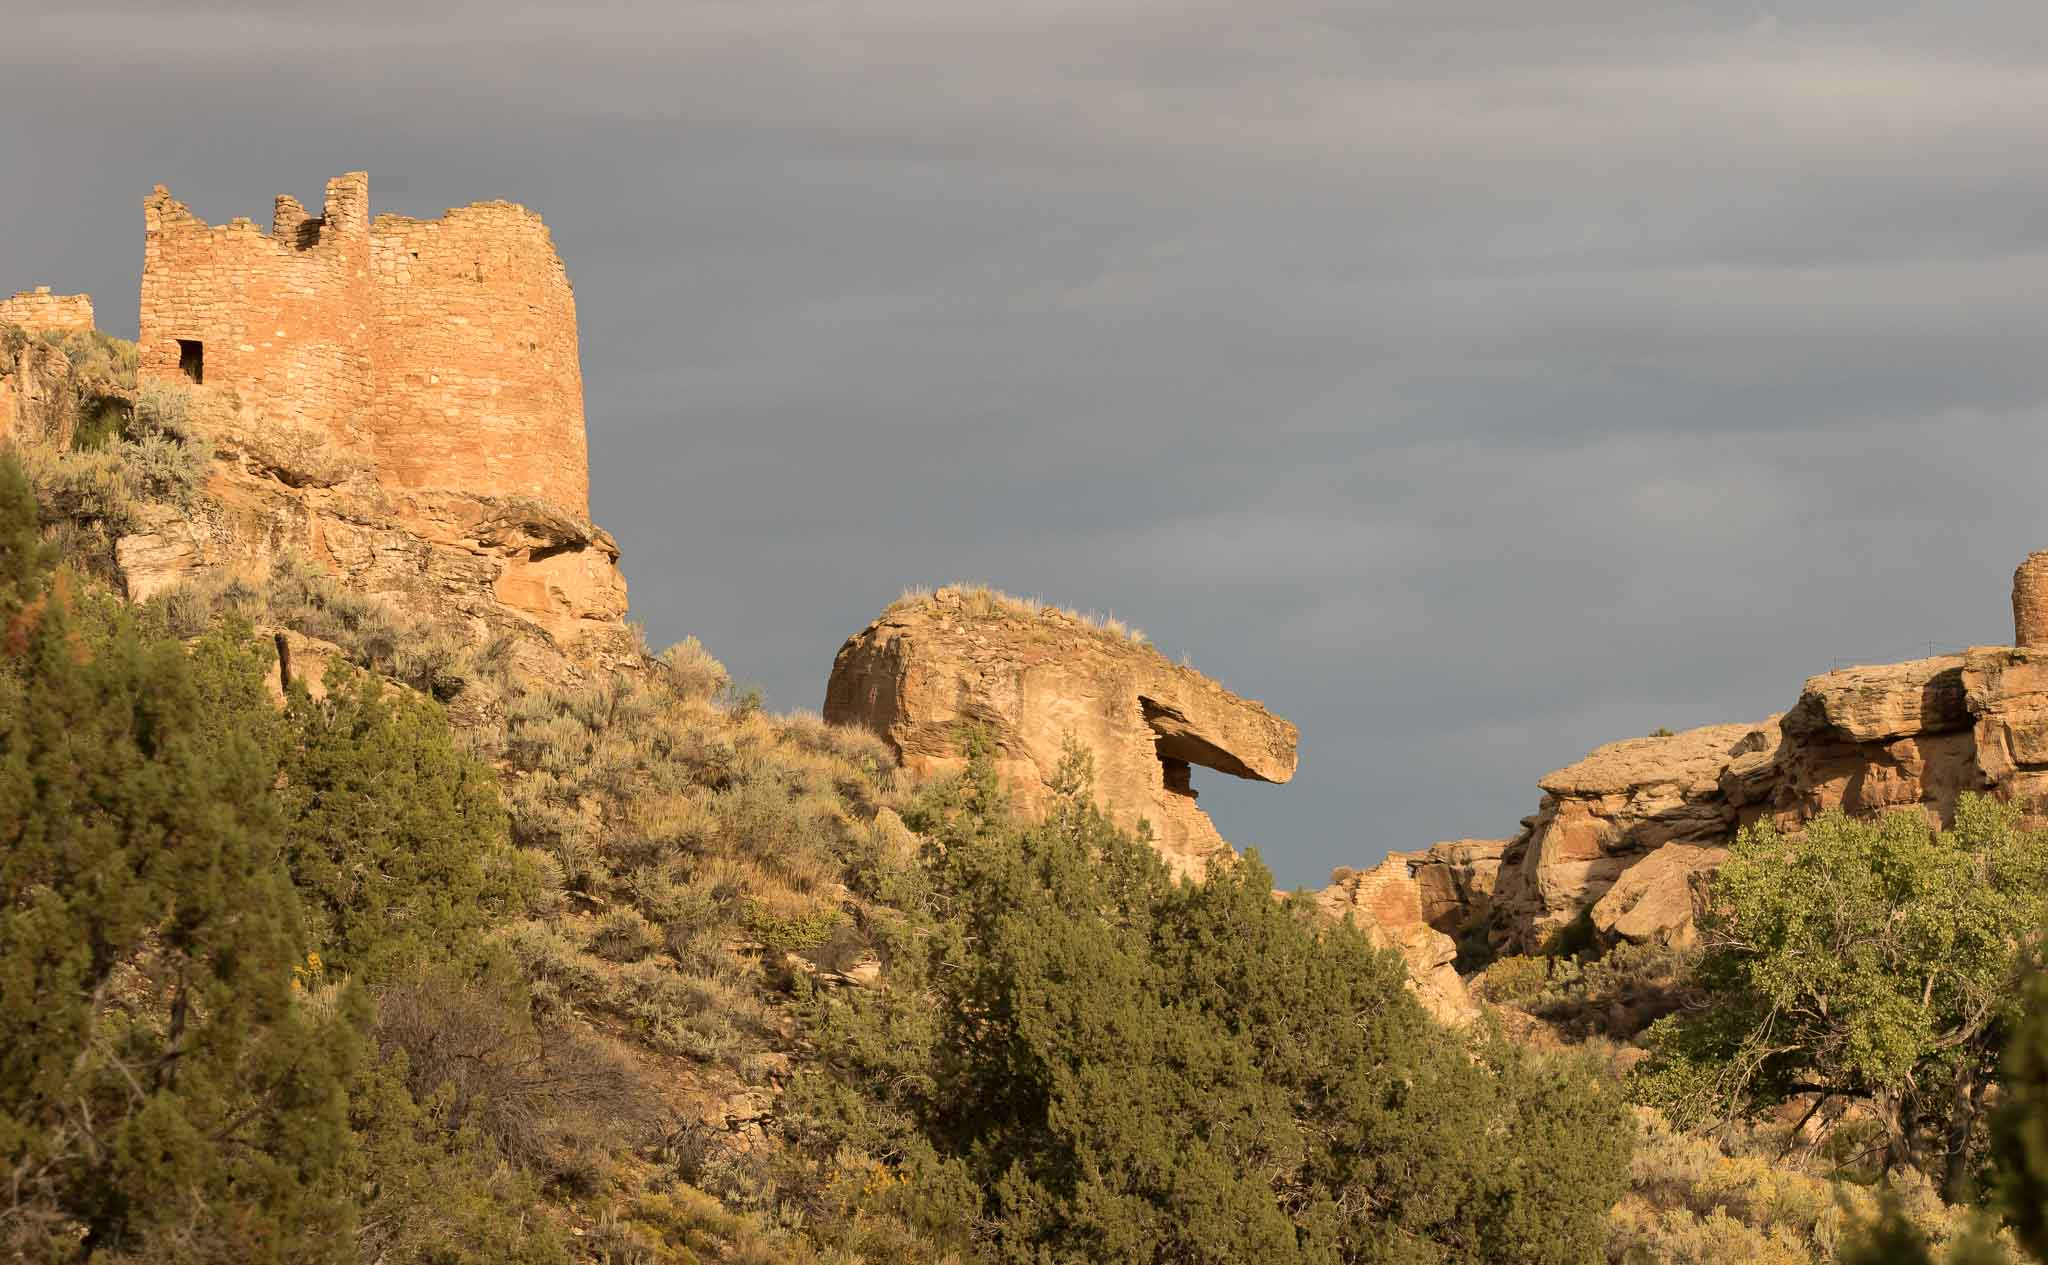 Twin Towers and Eroded Boulder House lit by the rising sun after a rainy night, Hovenweep National Monument, Aneth UT, September 30, 2016